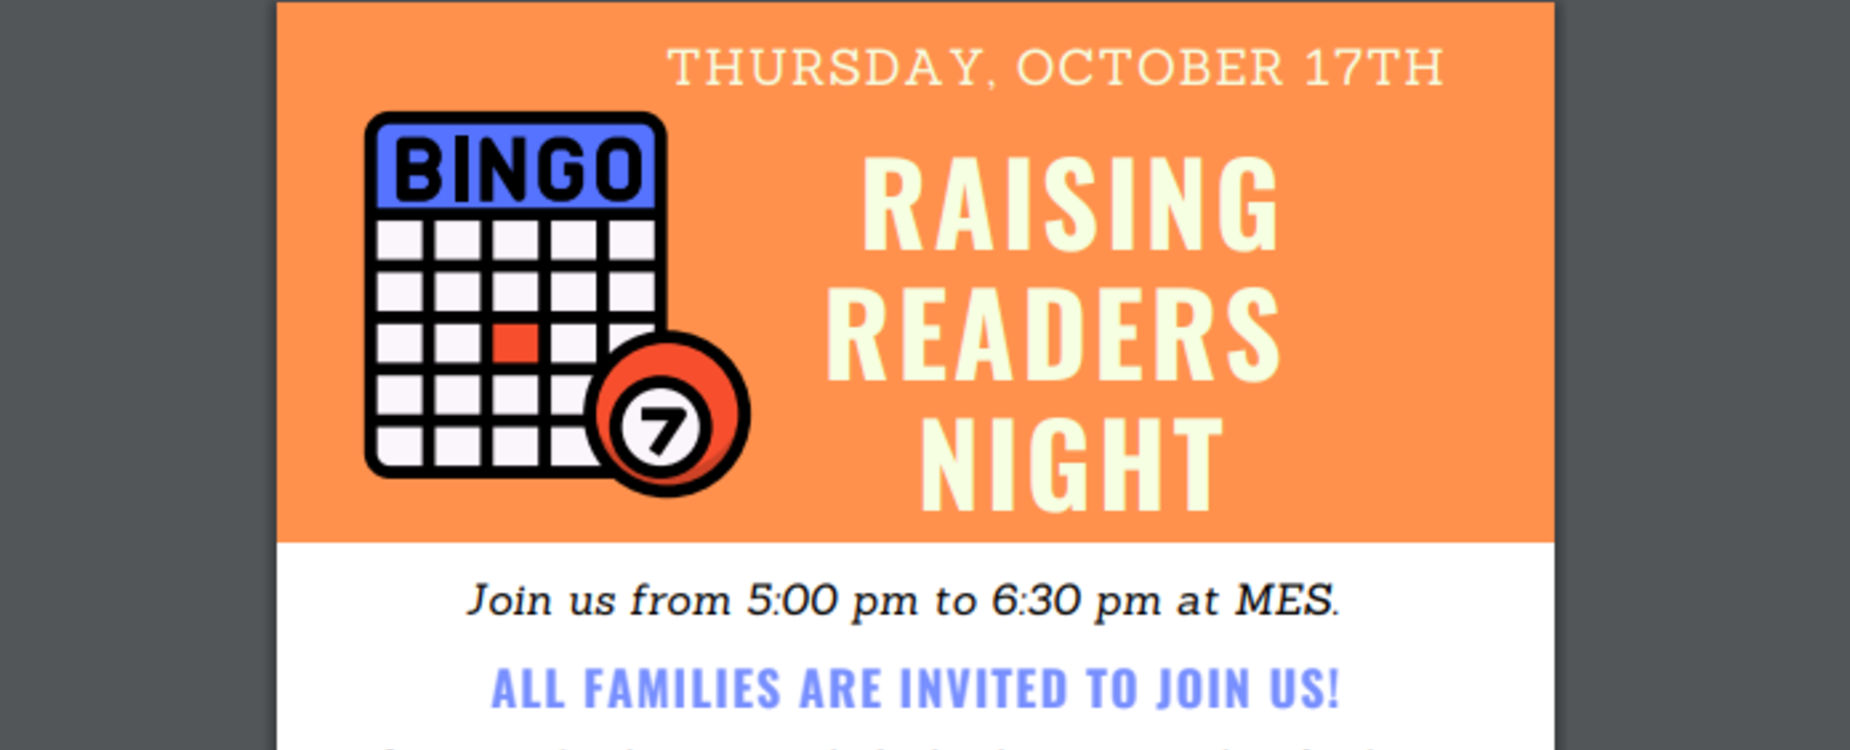 Bingo Raising Readers promo